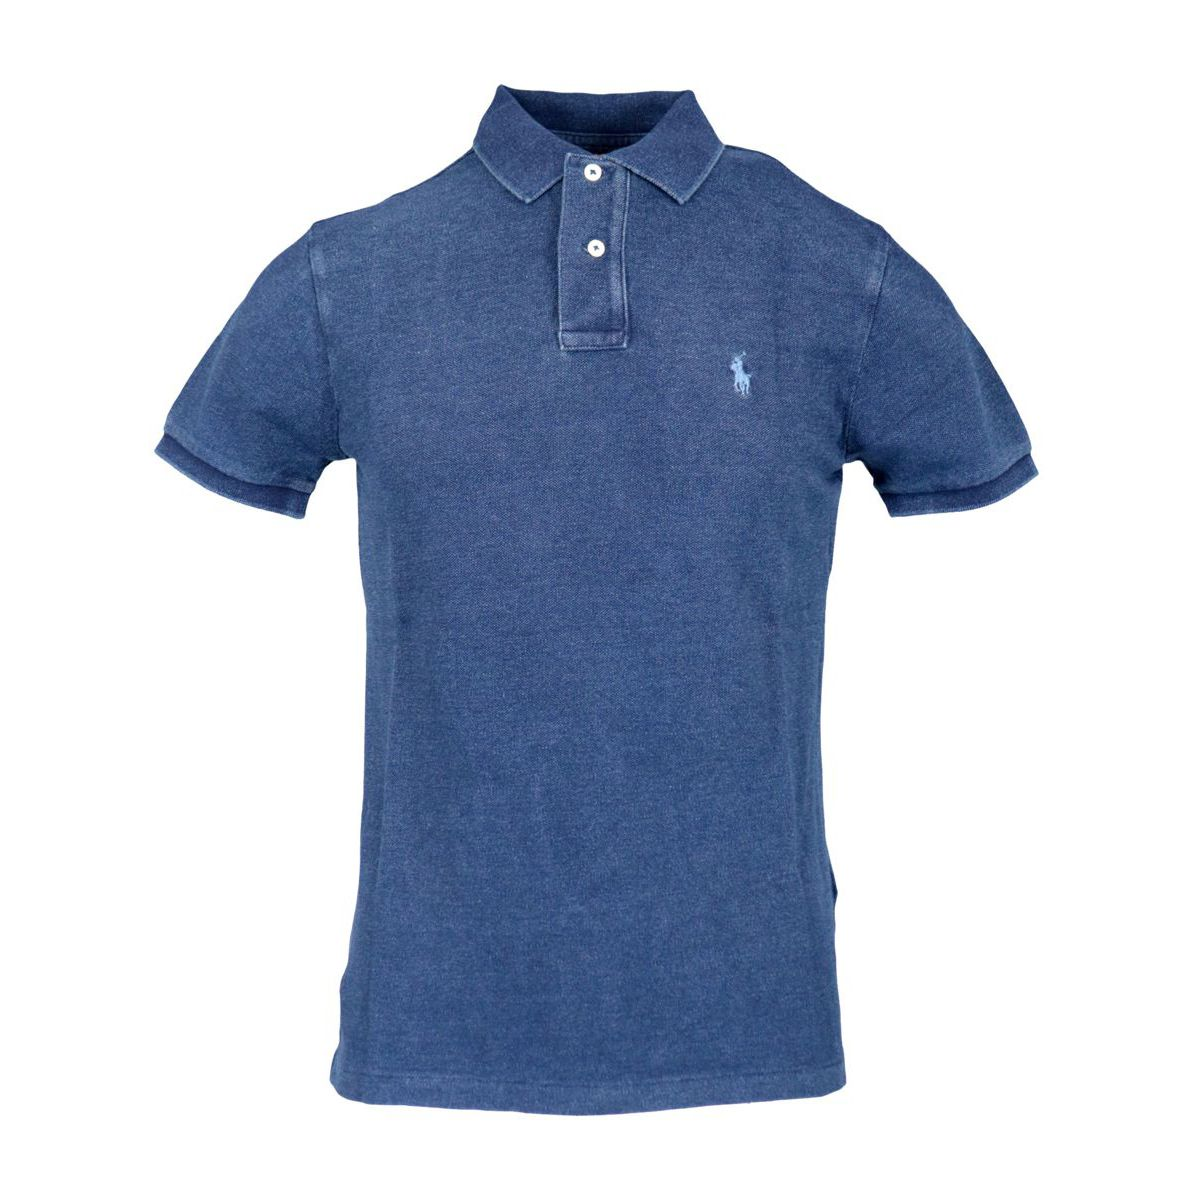 Cotton polo shirt with two buttons Custom Fit Denim Polo Ralph Lauren